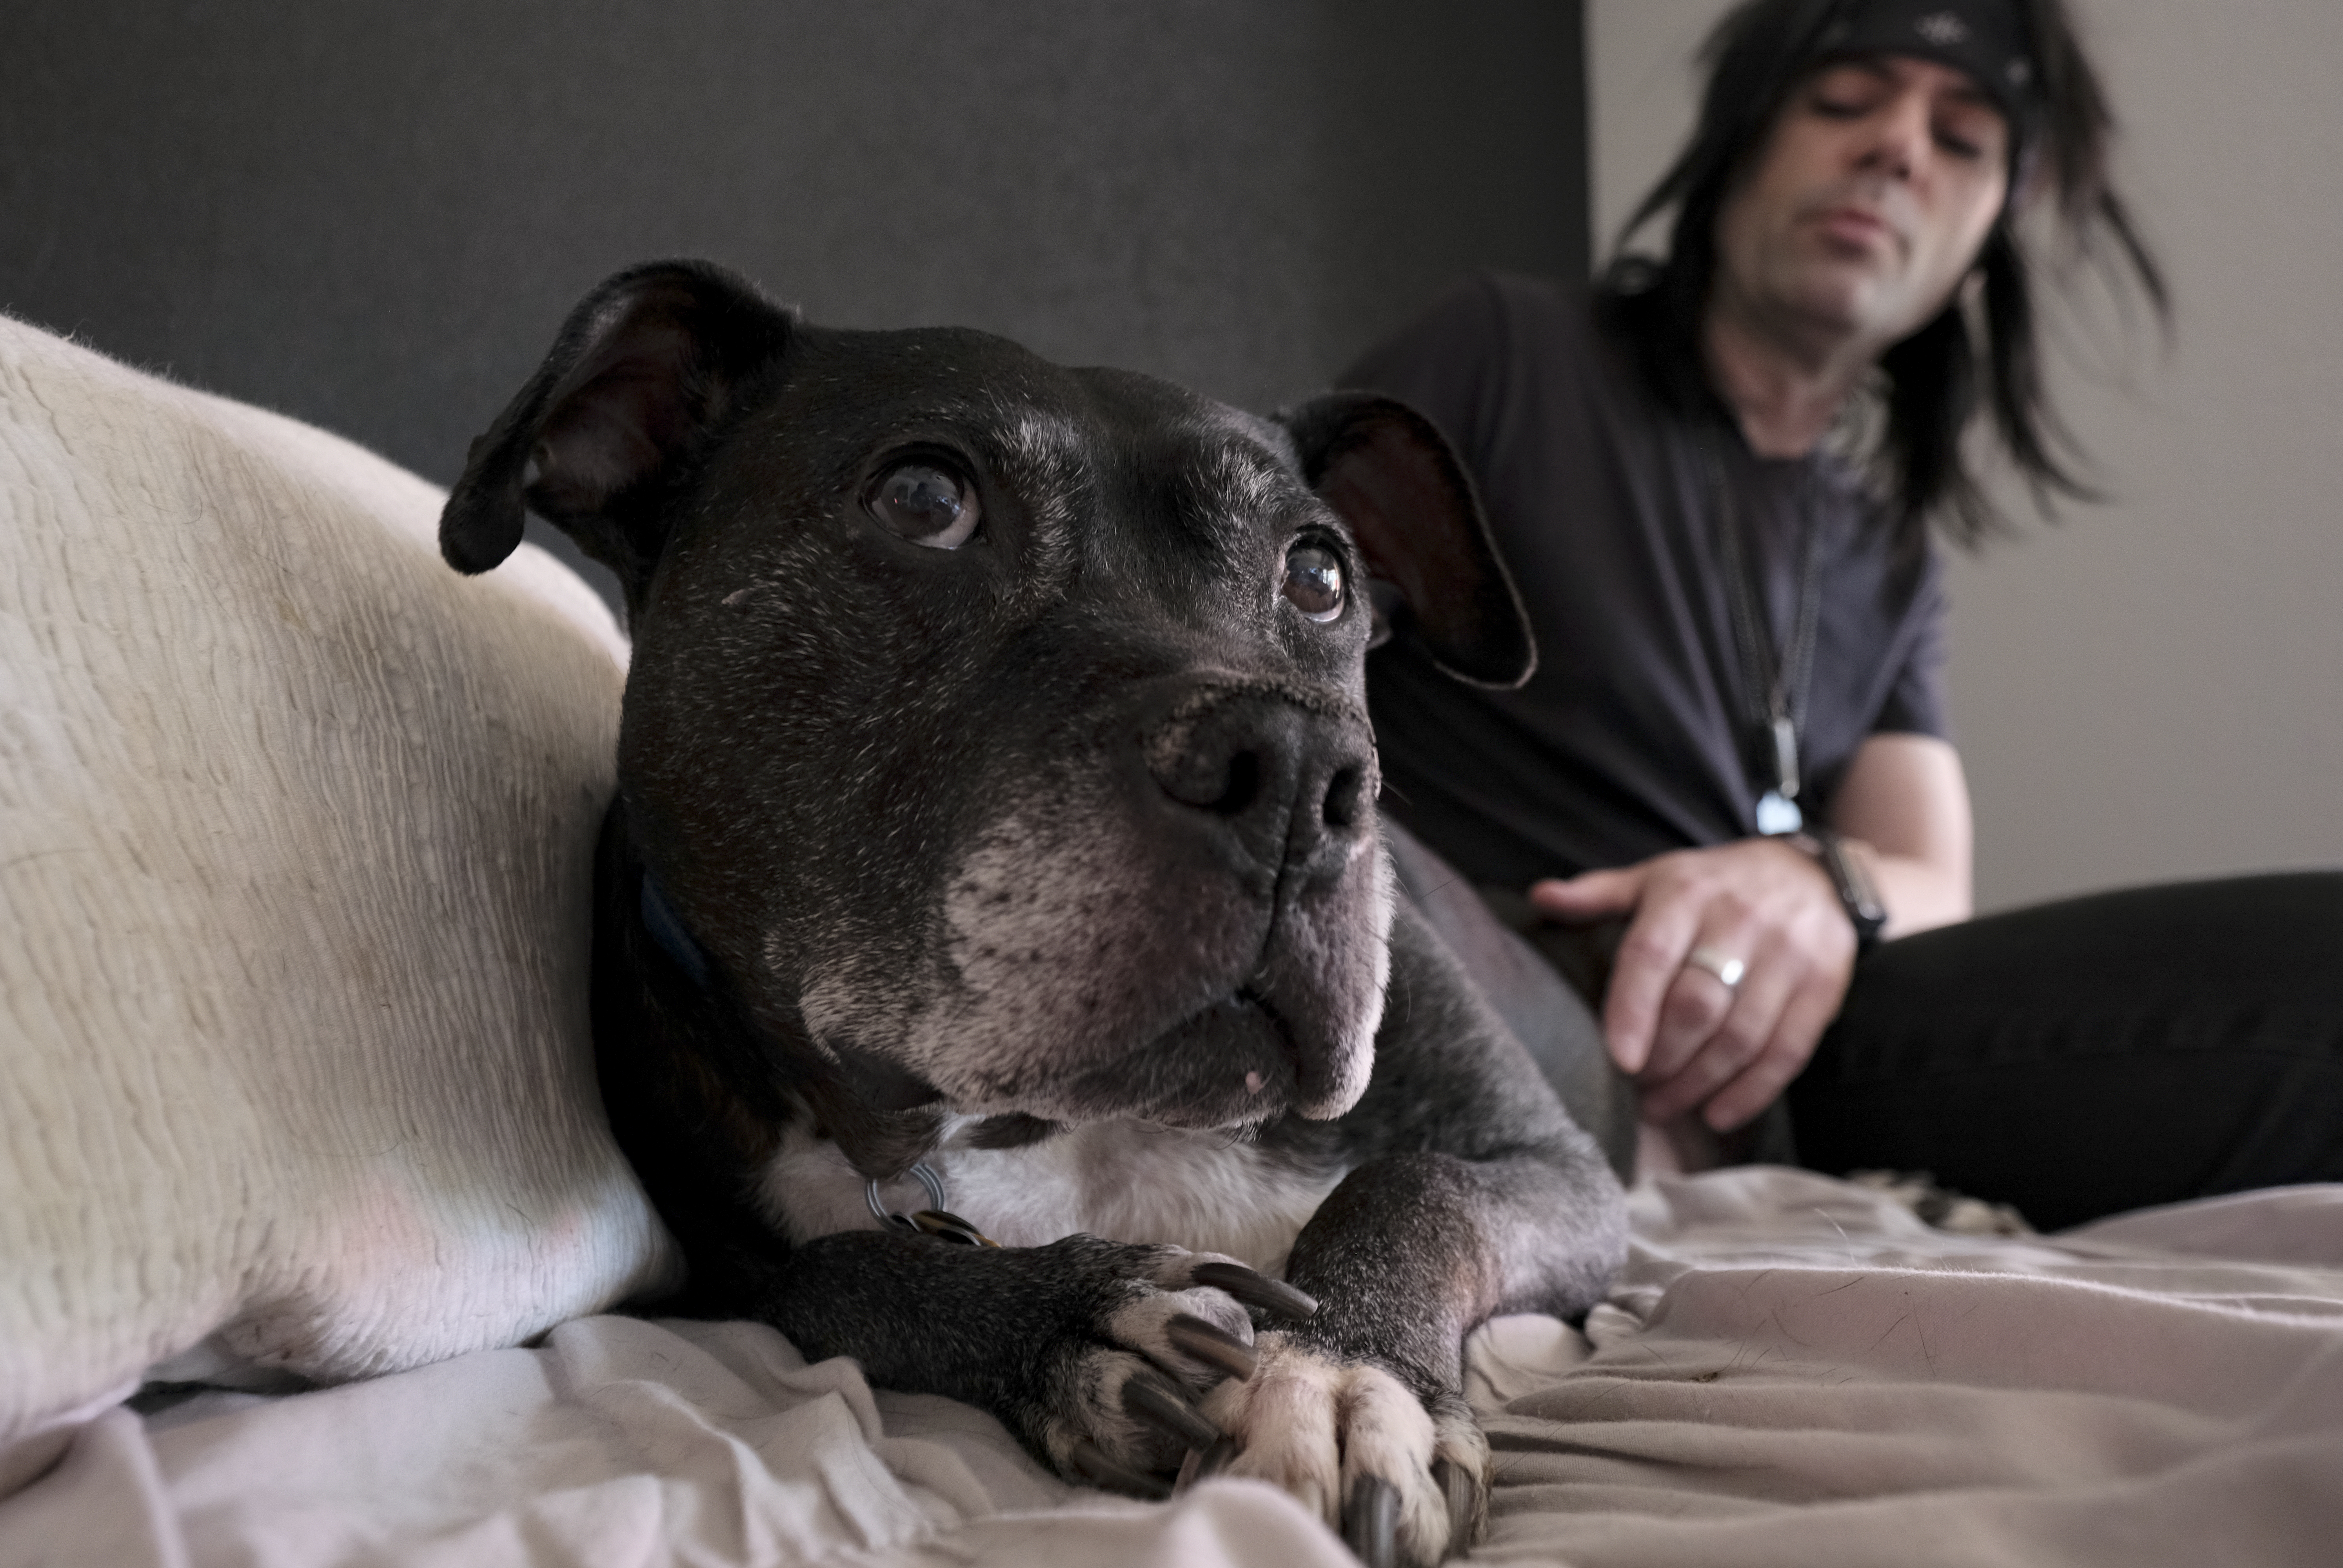 Adopter Richard Hunter said Mel still showed signs of emotional damage 12 years after his rescue from a dogfighting ring. MUST CREDIT: Washington Post photo by Bonnie Jo Mount